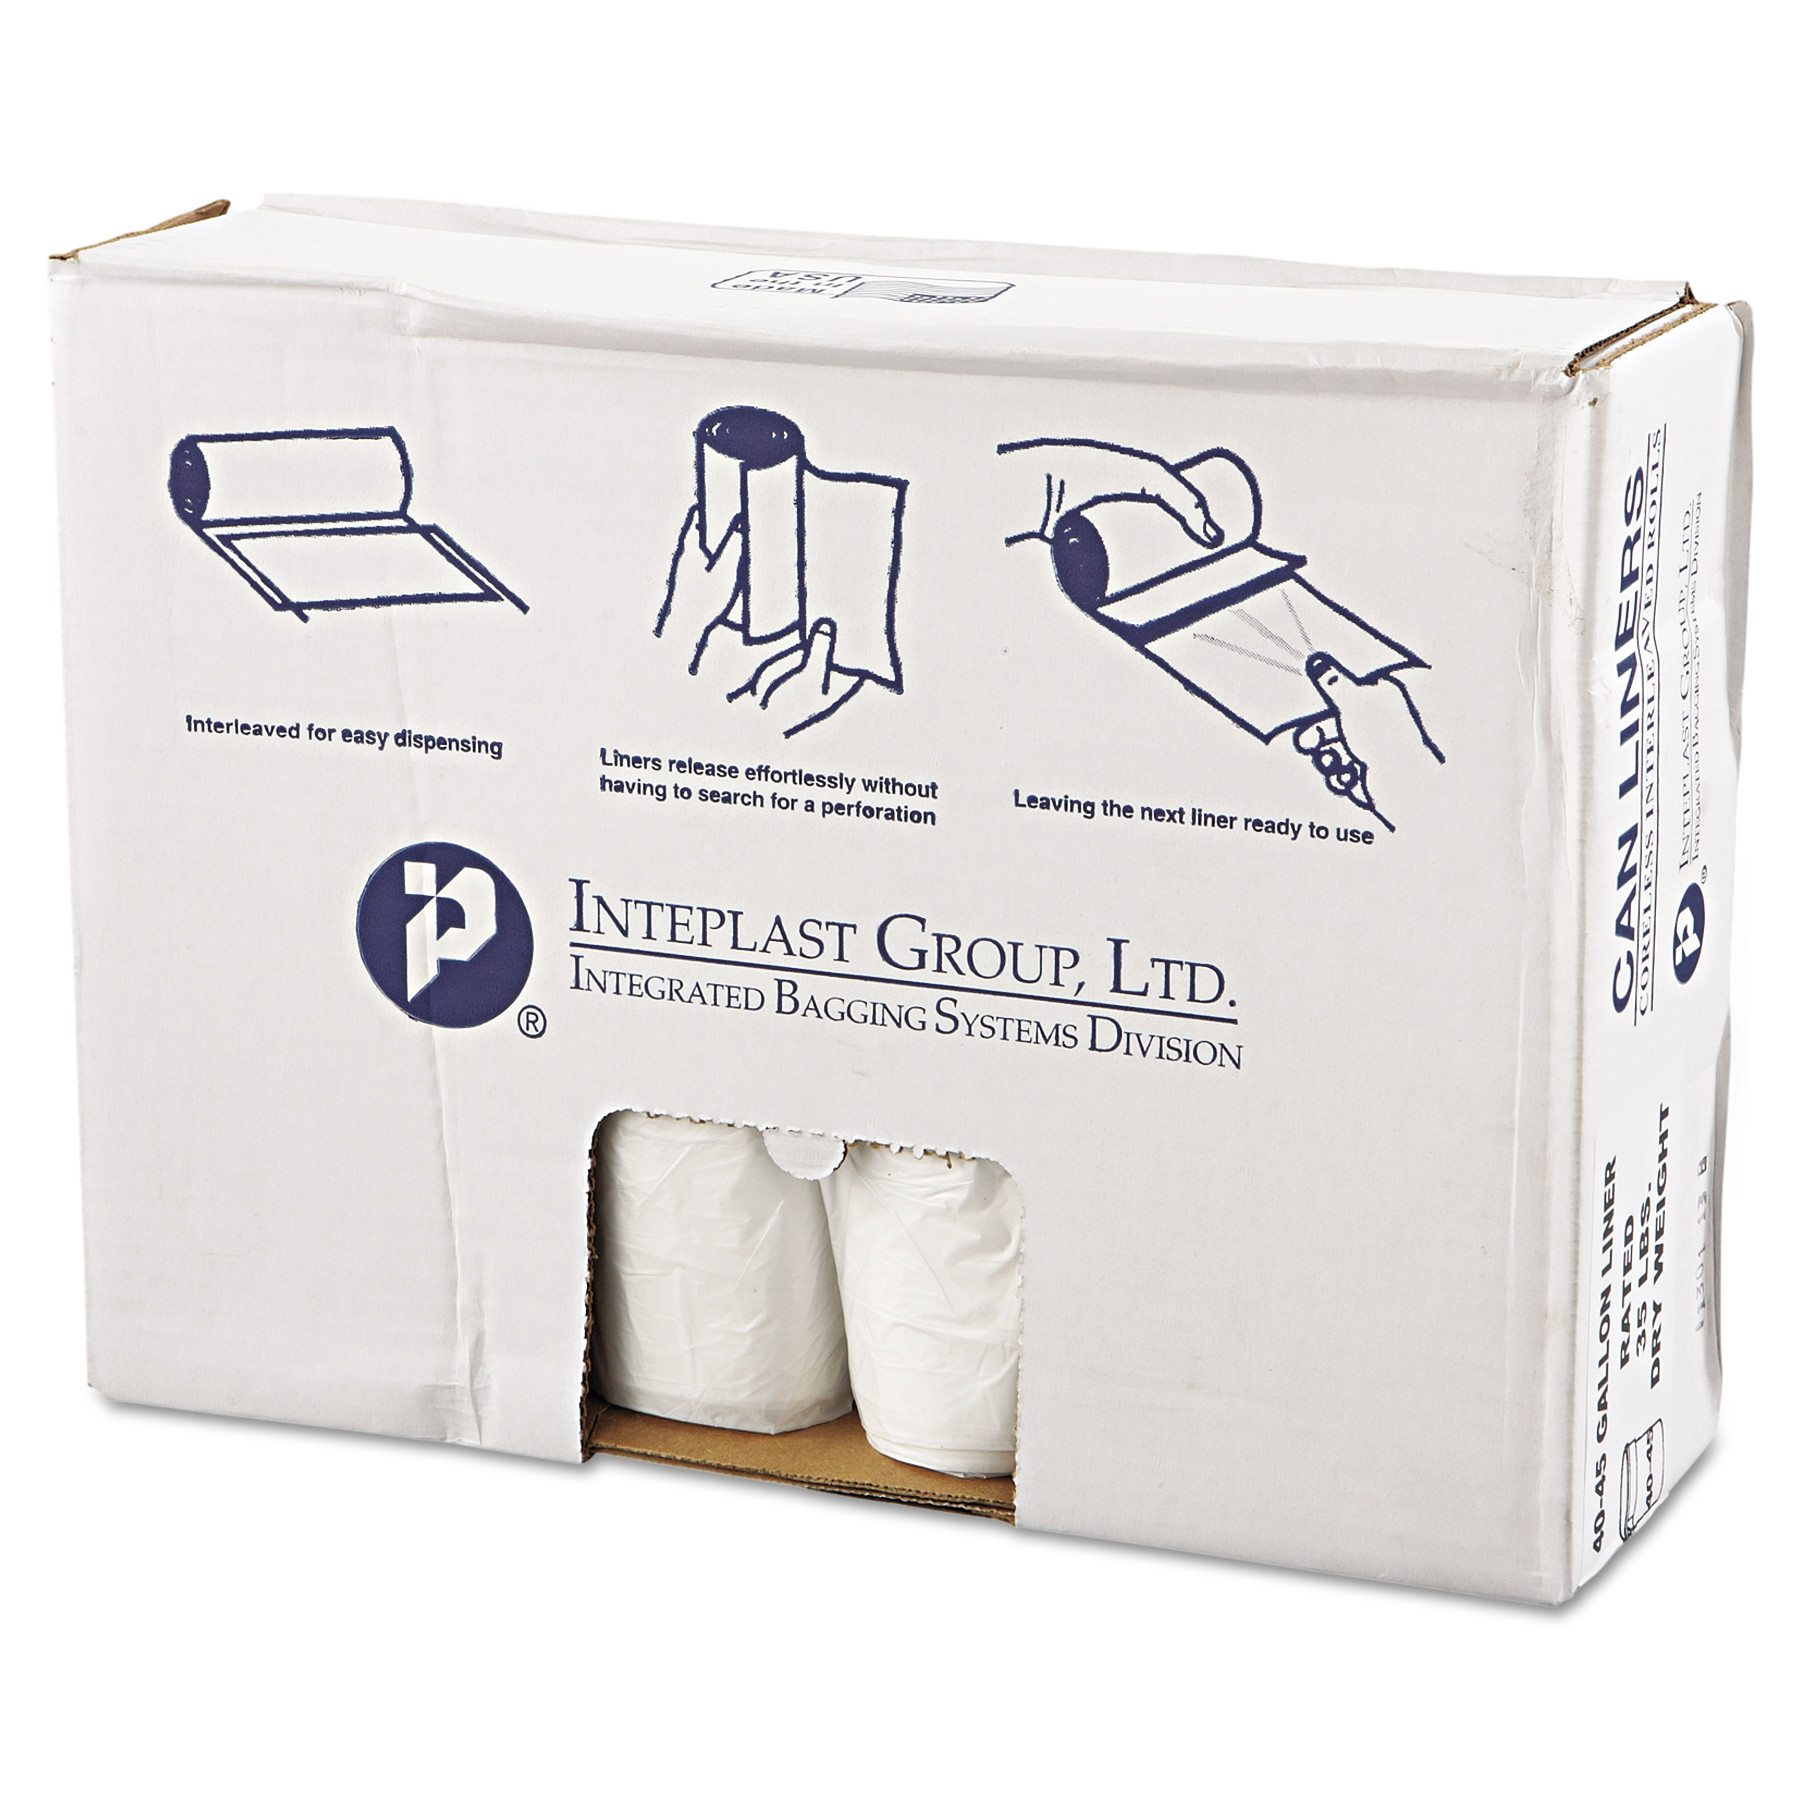 Inteplast Group VALH4048N12 High-Density Can Liner, 40 x 46, 45gal, 12mic, Clear, 25/Roll, 10 Rolls/Carton